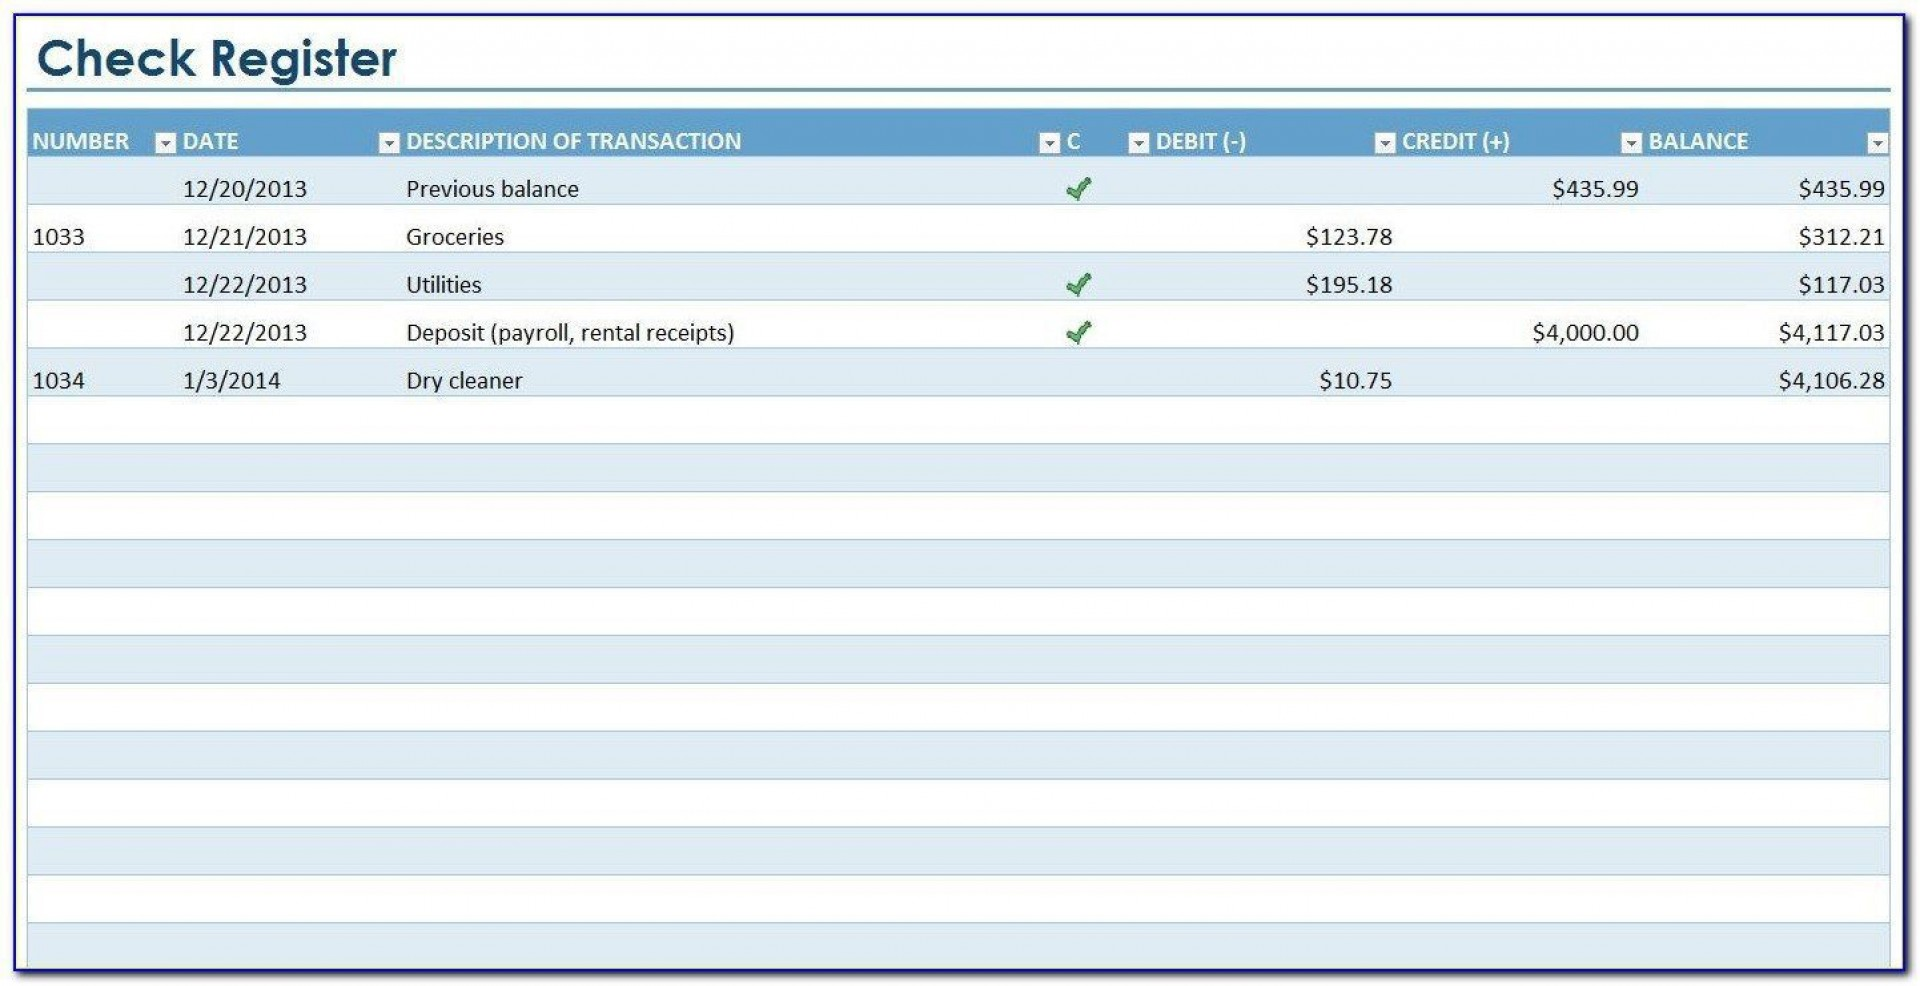 006 Outstanding Checkbook Register Template Excel 2013 Highest Quality 1920